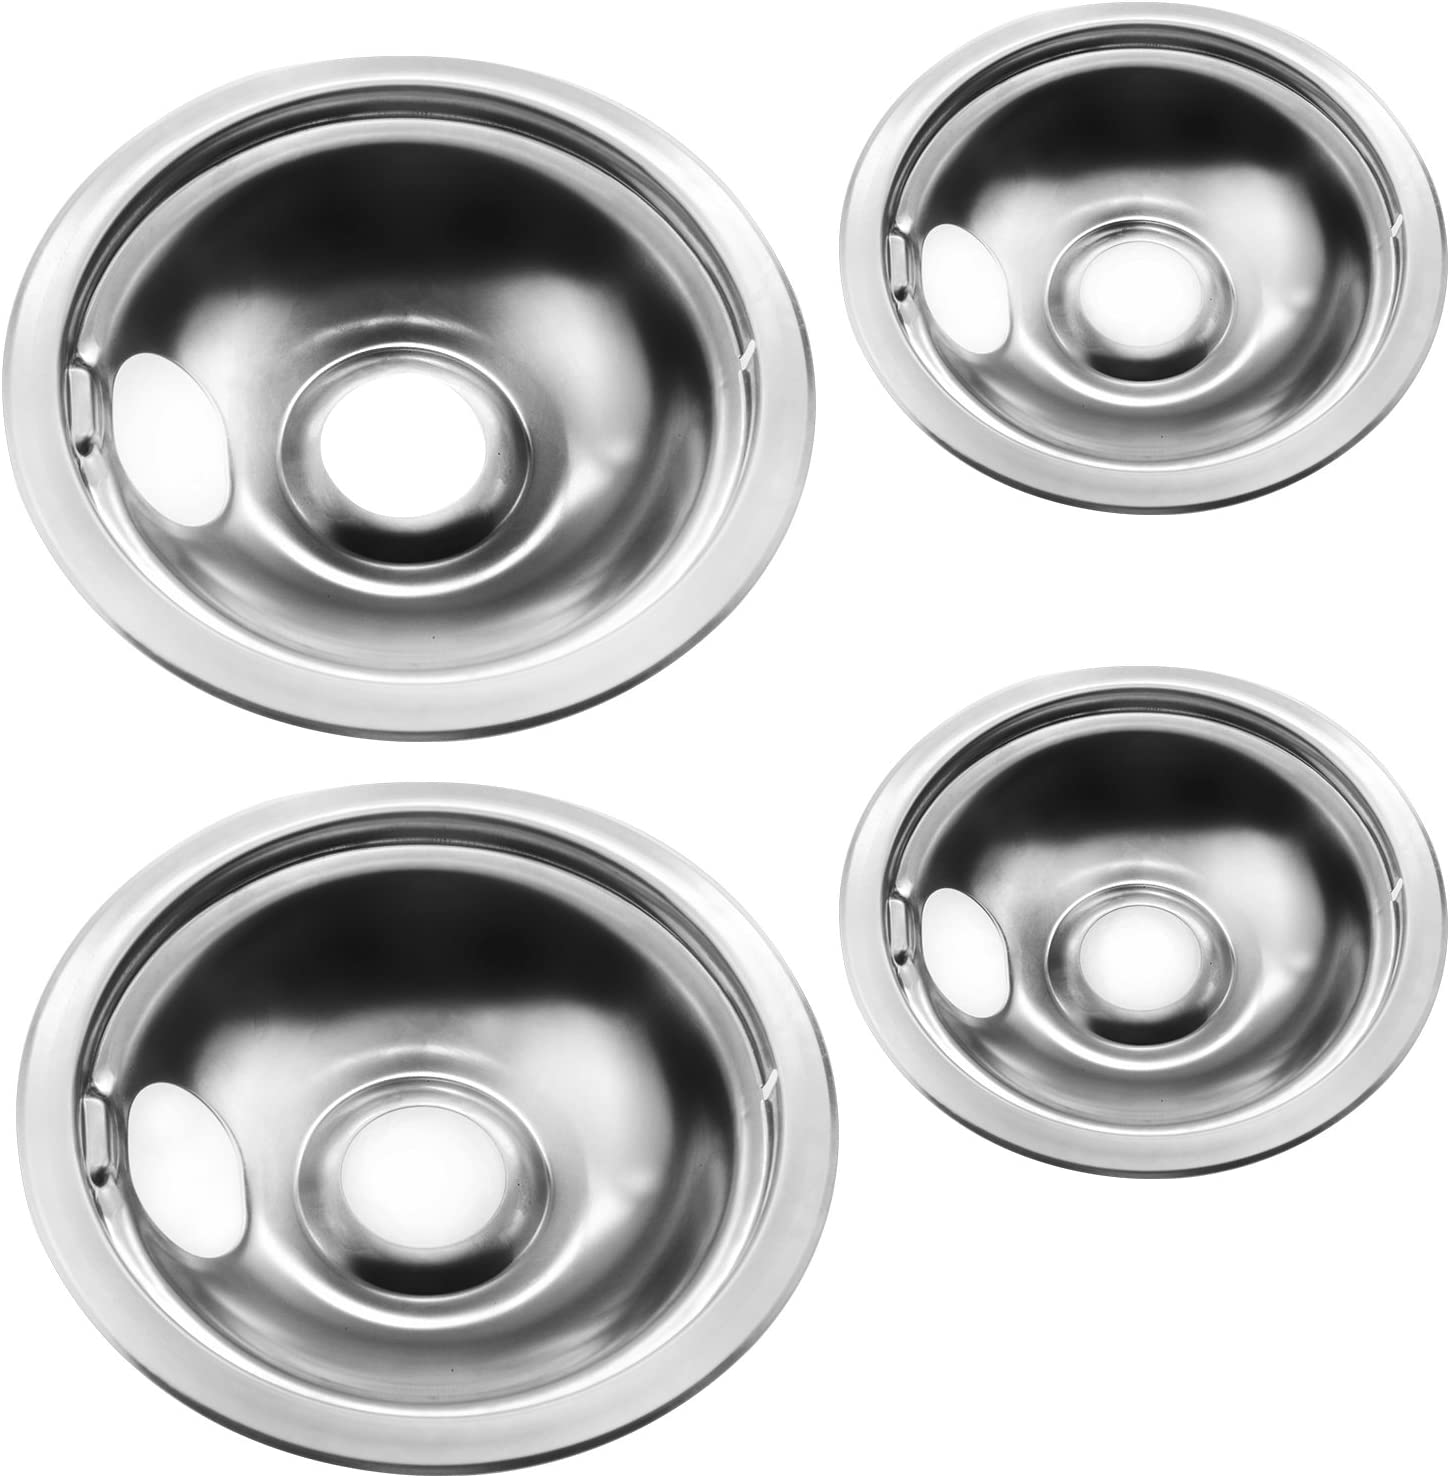 316048413 542T013P01 Pack of 2 PS437595 Range Drip Pan 8 Inch Chrome-Replaces 5303935054 542T021W01 - AP2124664 542T021P01 542T019P01 542T015P01 542T008P02 542T017P01 542T008P01